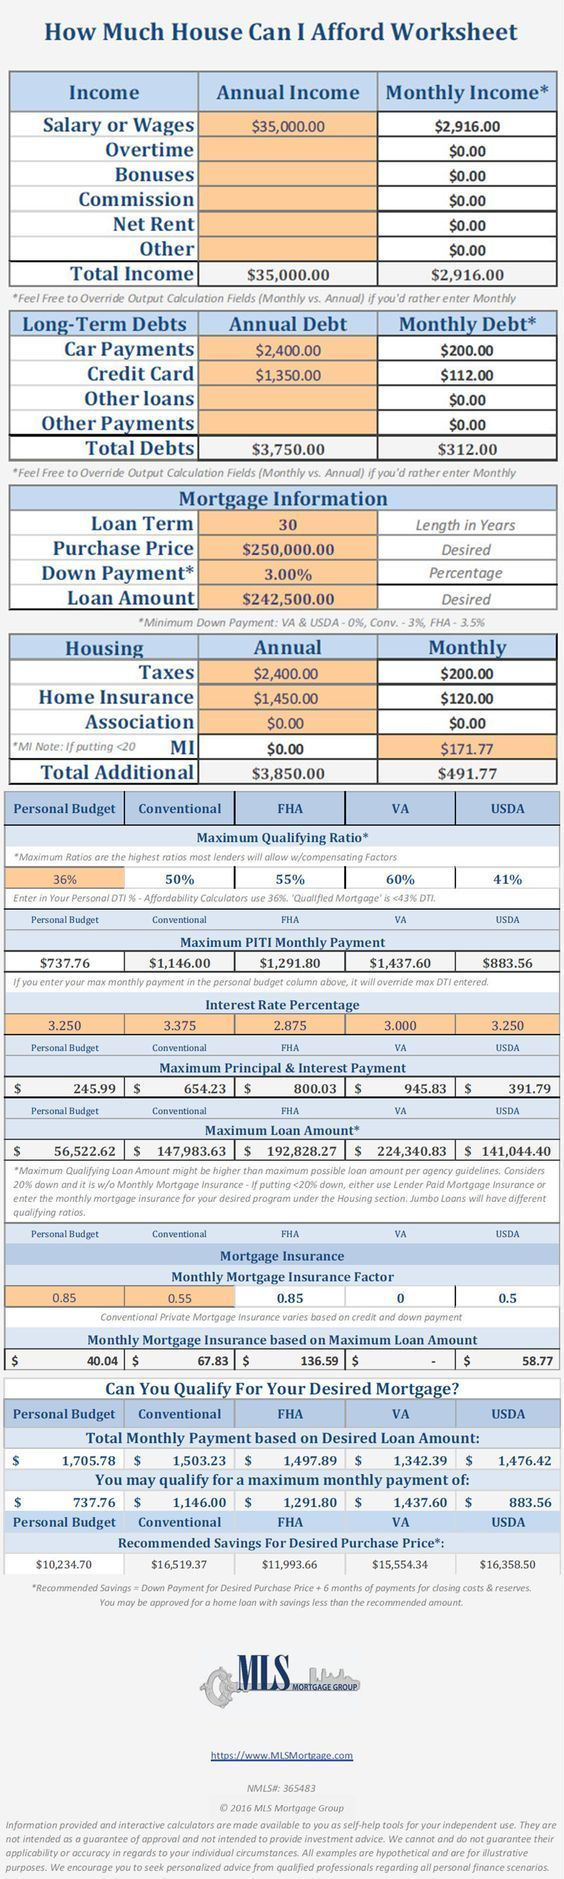 How Much House Can I Afford? Insider Tips and Home Affordability CalculatorBraxton Bolden